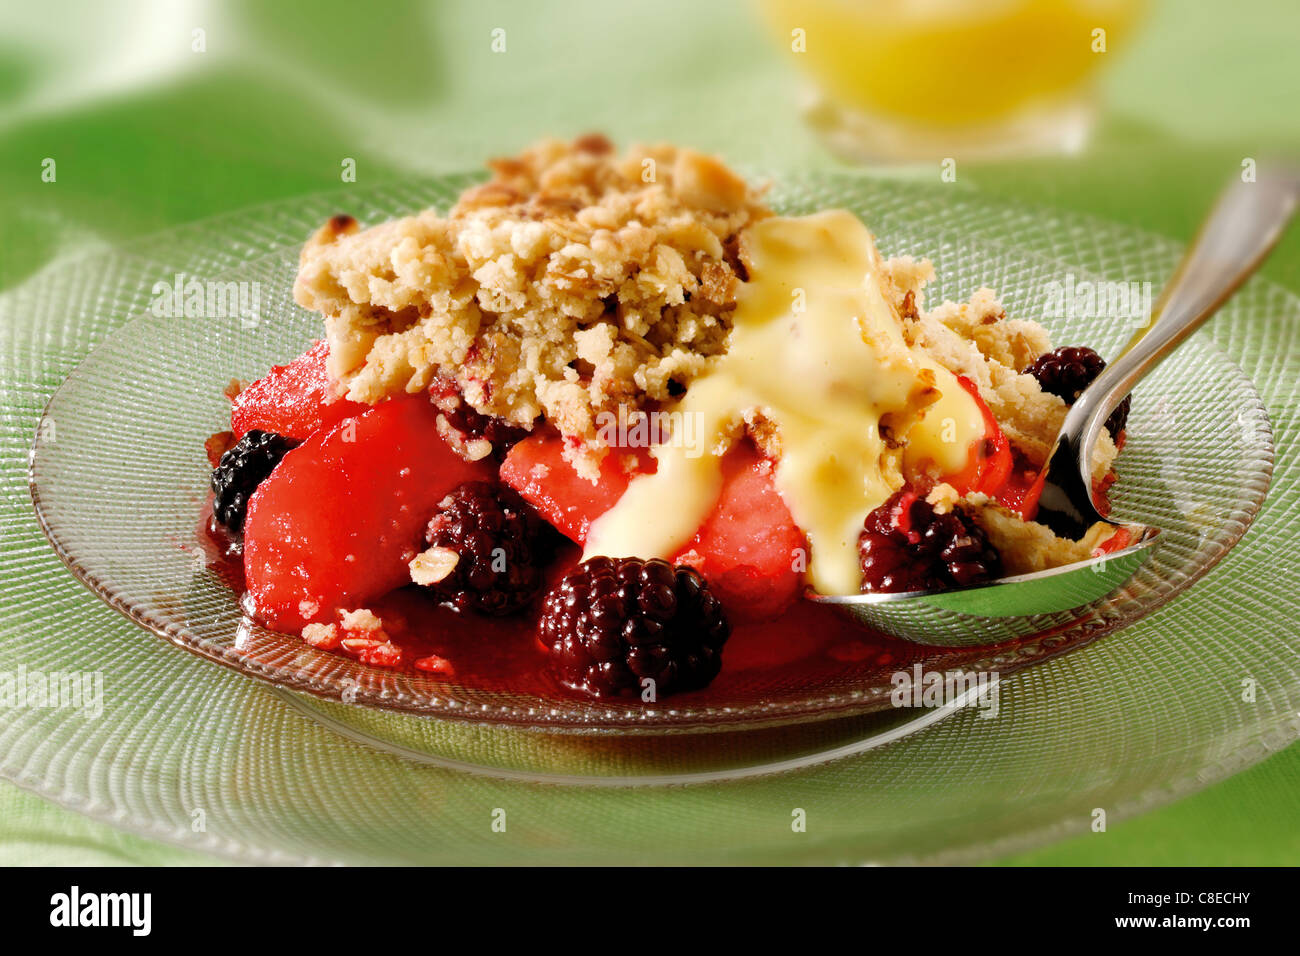 British Food - Blackberry & Apple Crumble - Stock Image